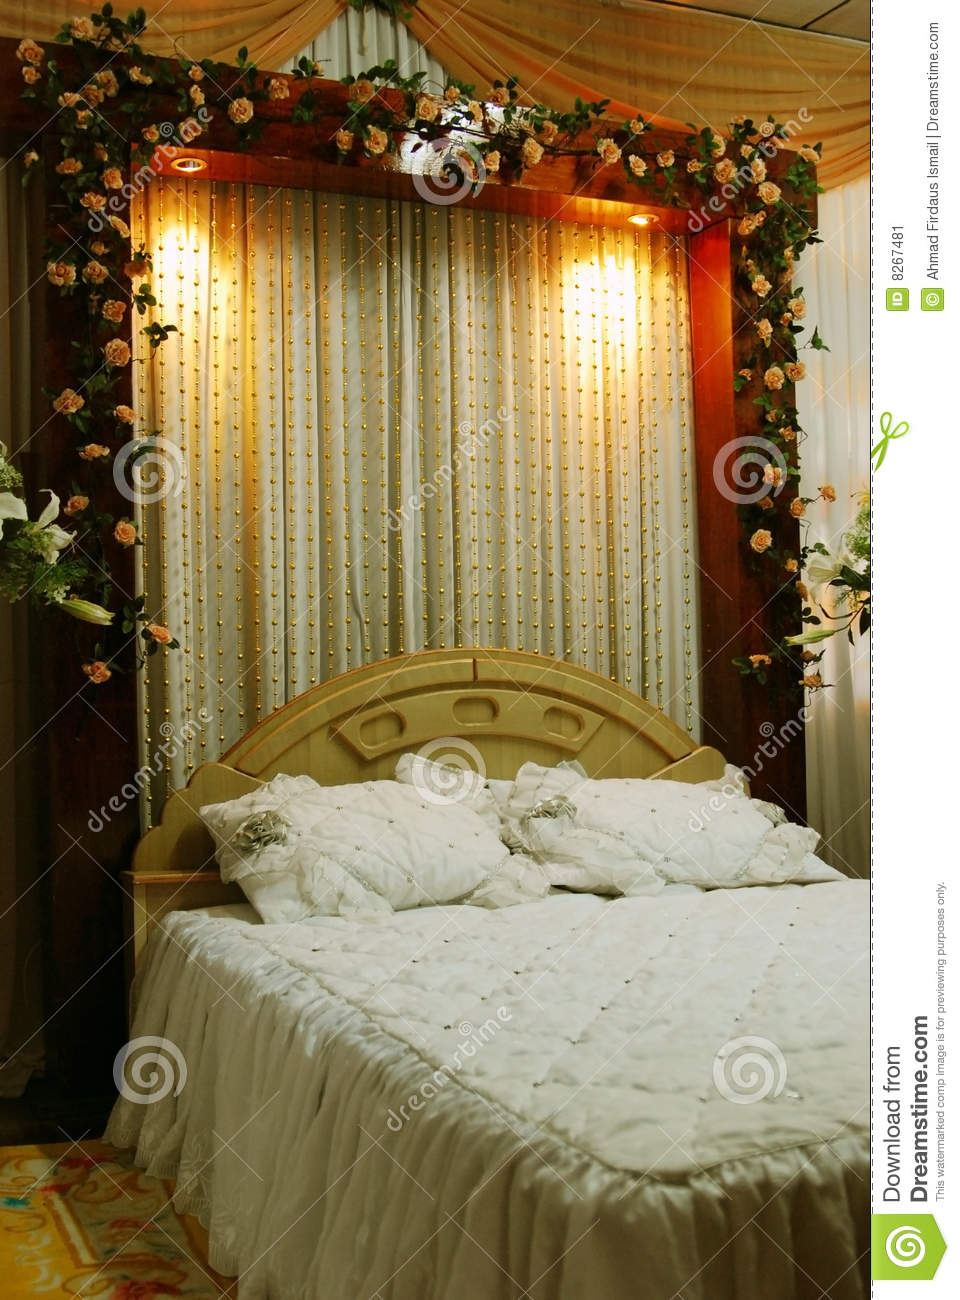 Wedding Bed Decoration Stock Image - Image: 8267481